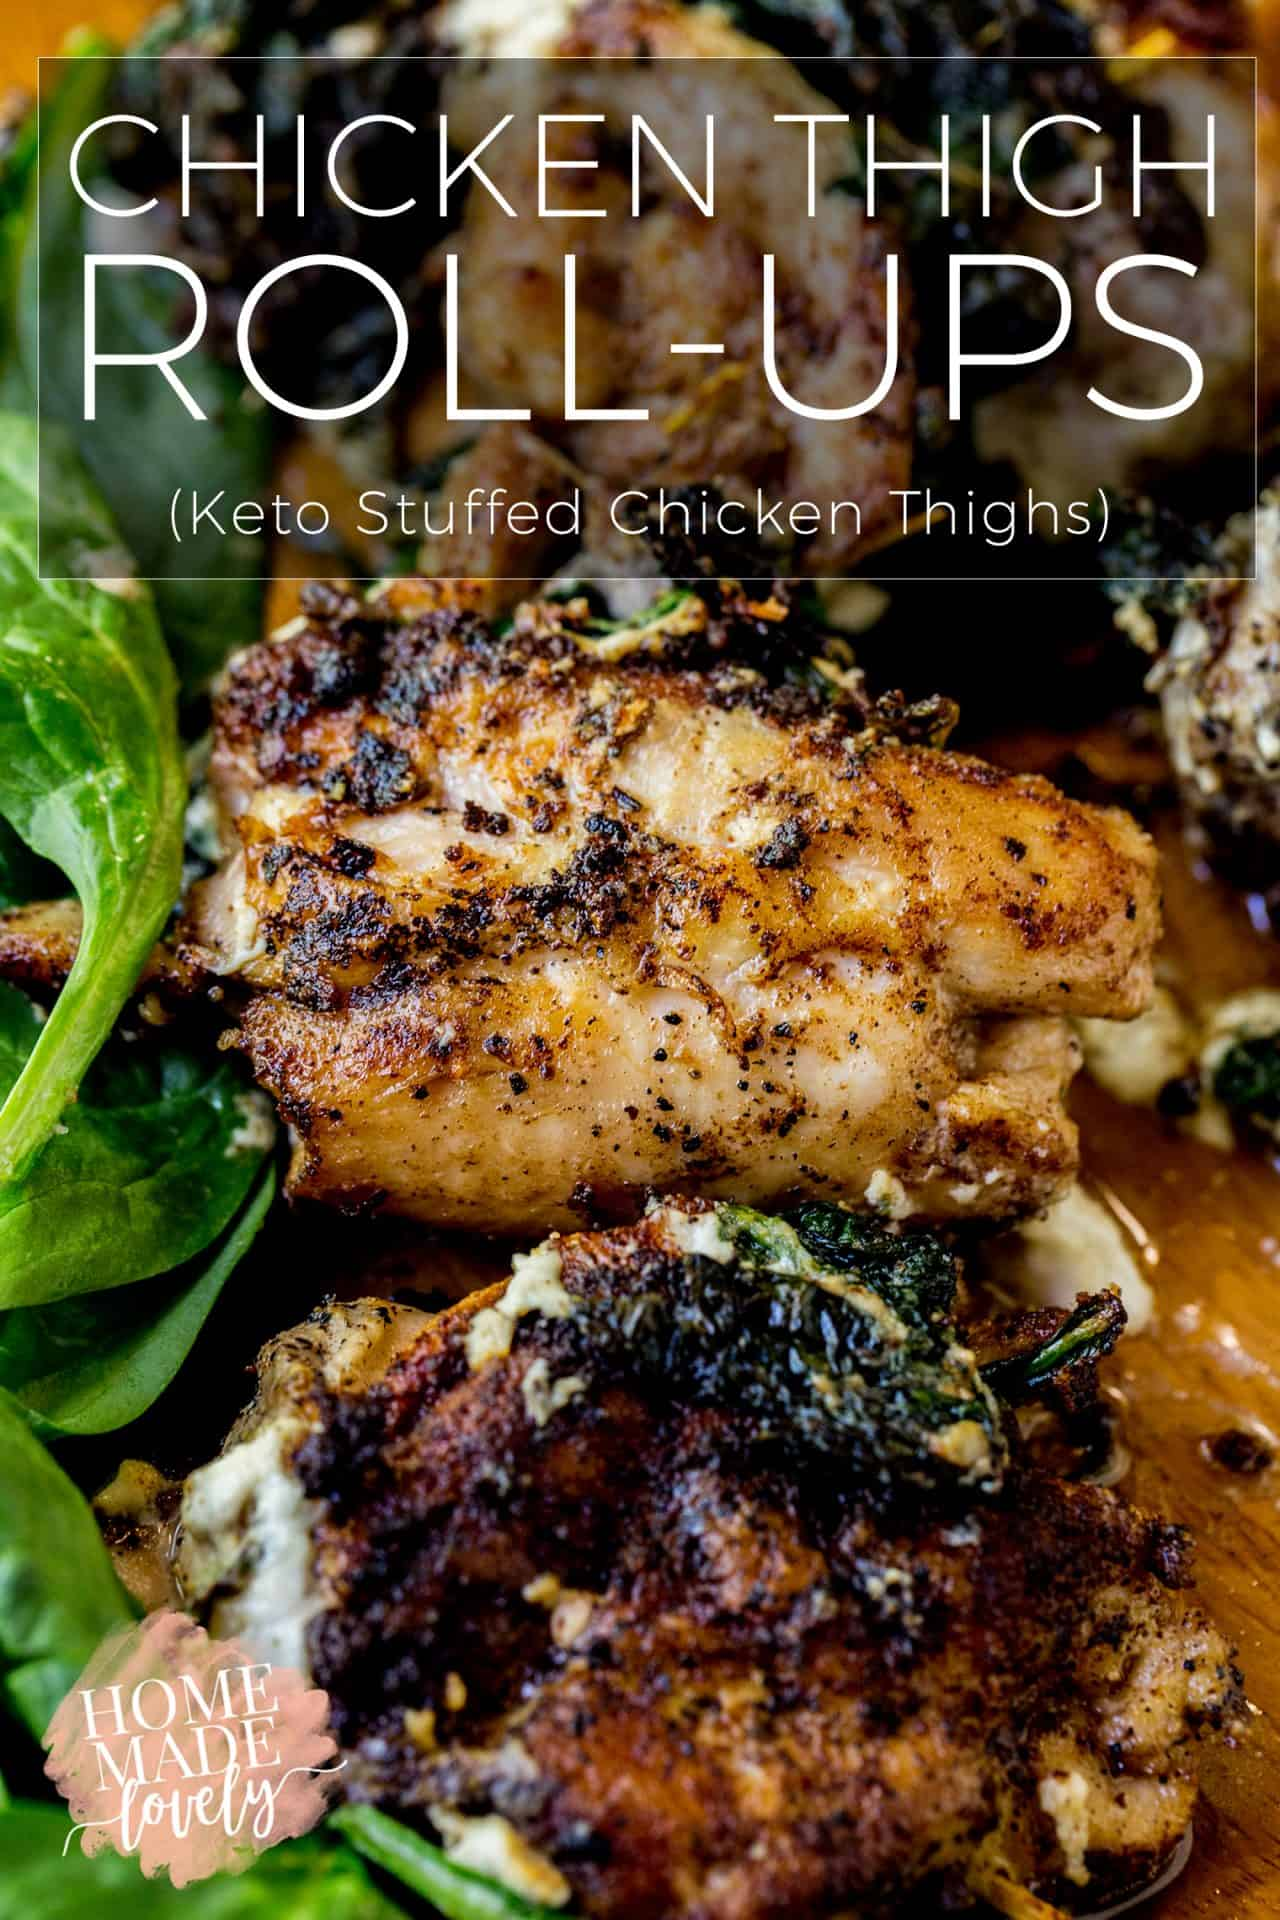 These Keto-friendly, chicken thigh roll-ups are stuffed with spinach and cheese and can be prepped and cooked later. They're also perfect served with spinach salad or other veggies.